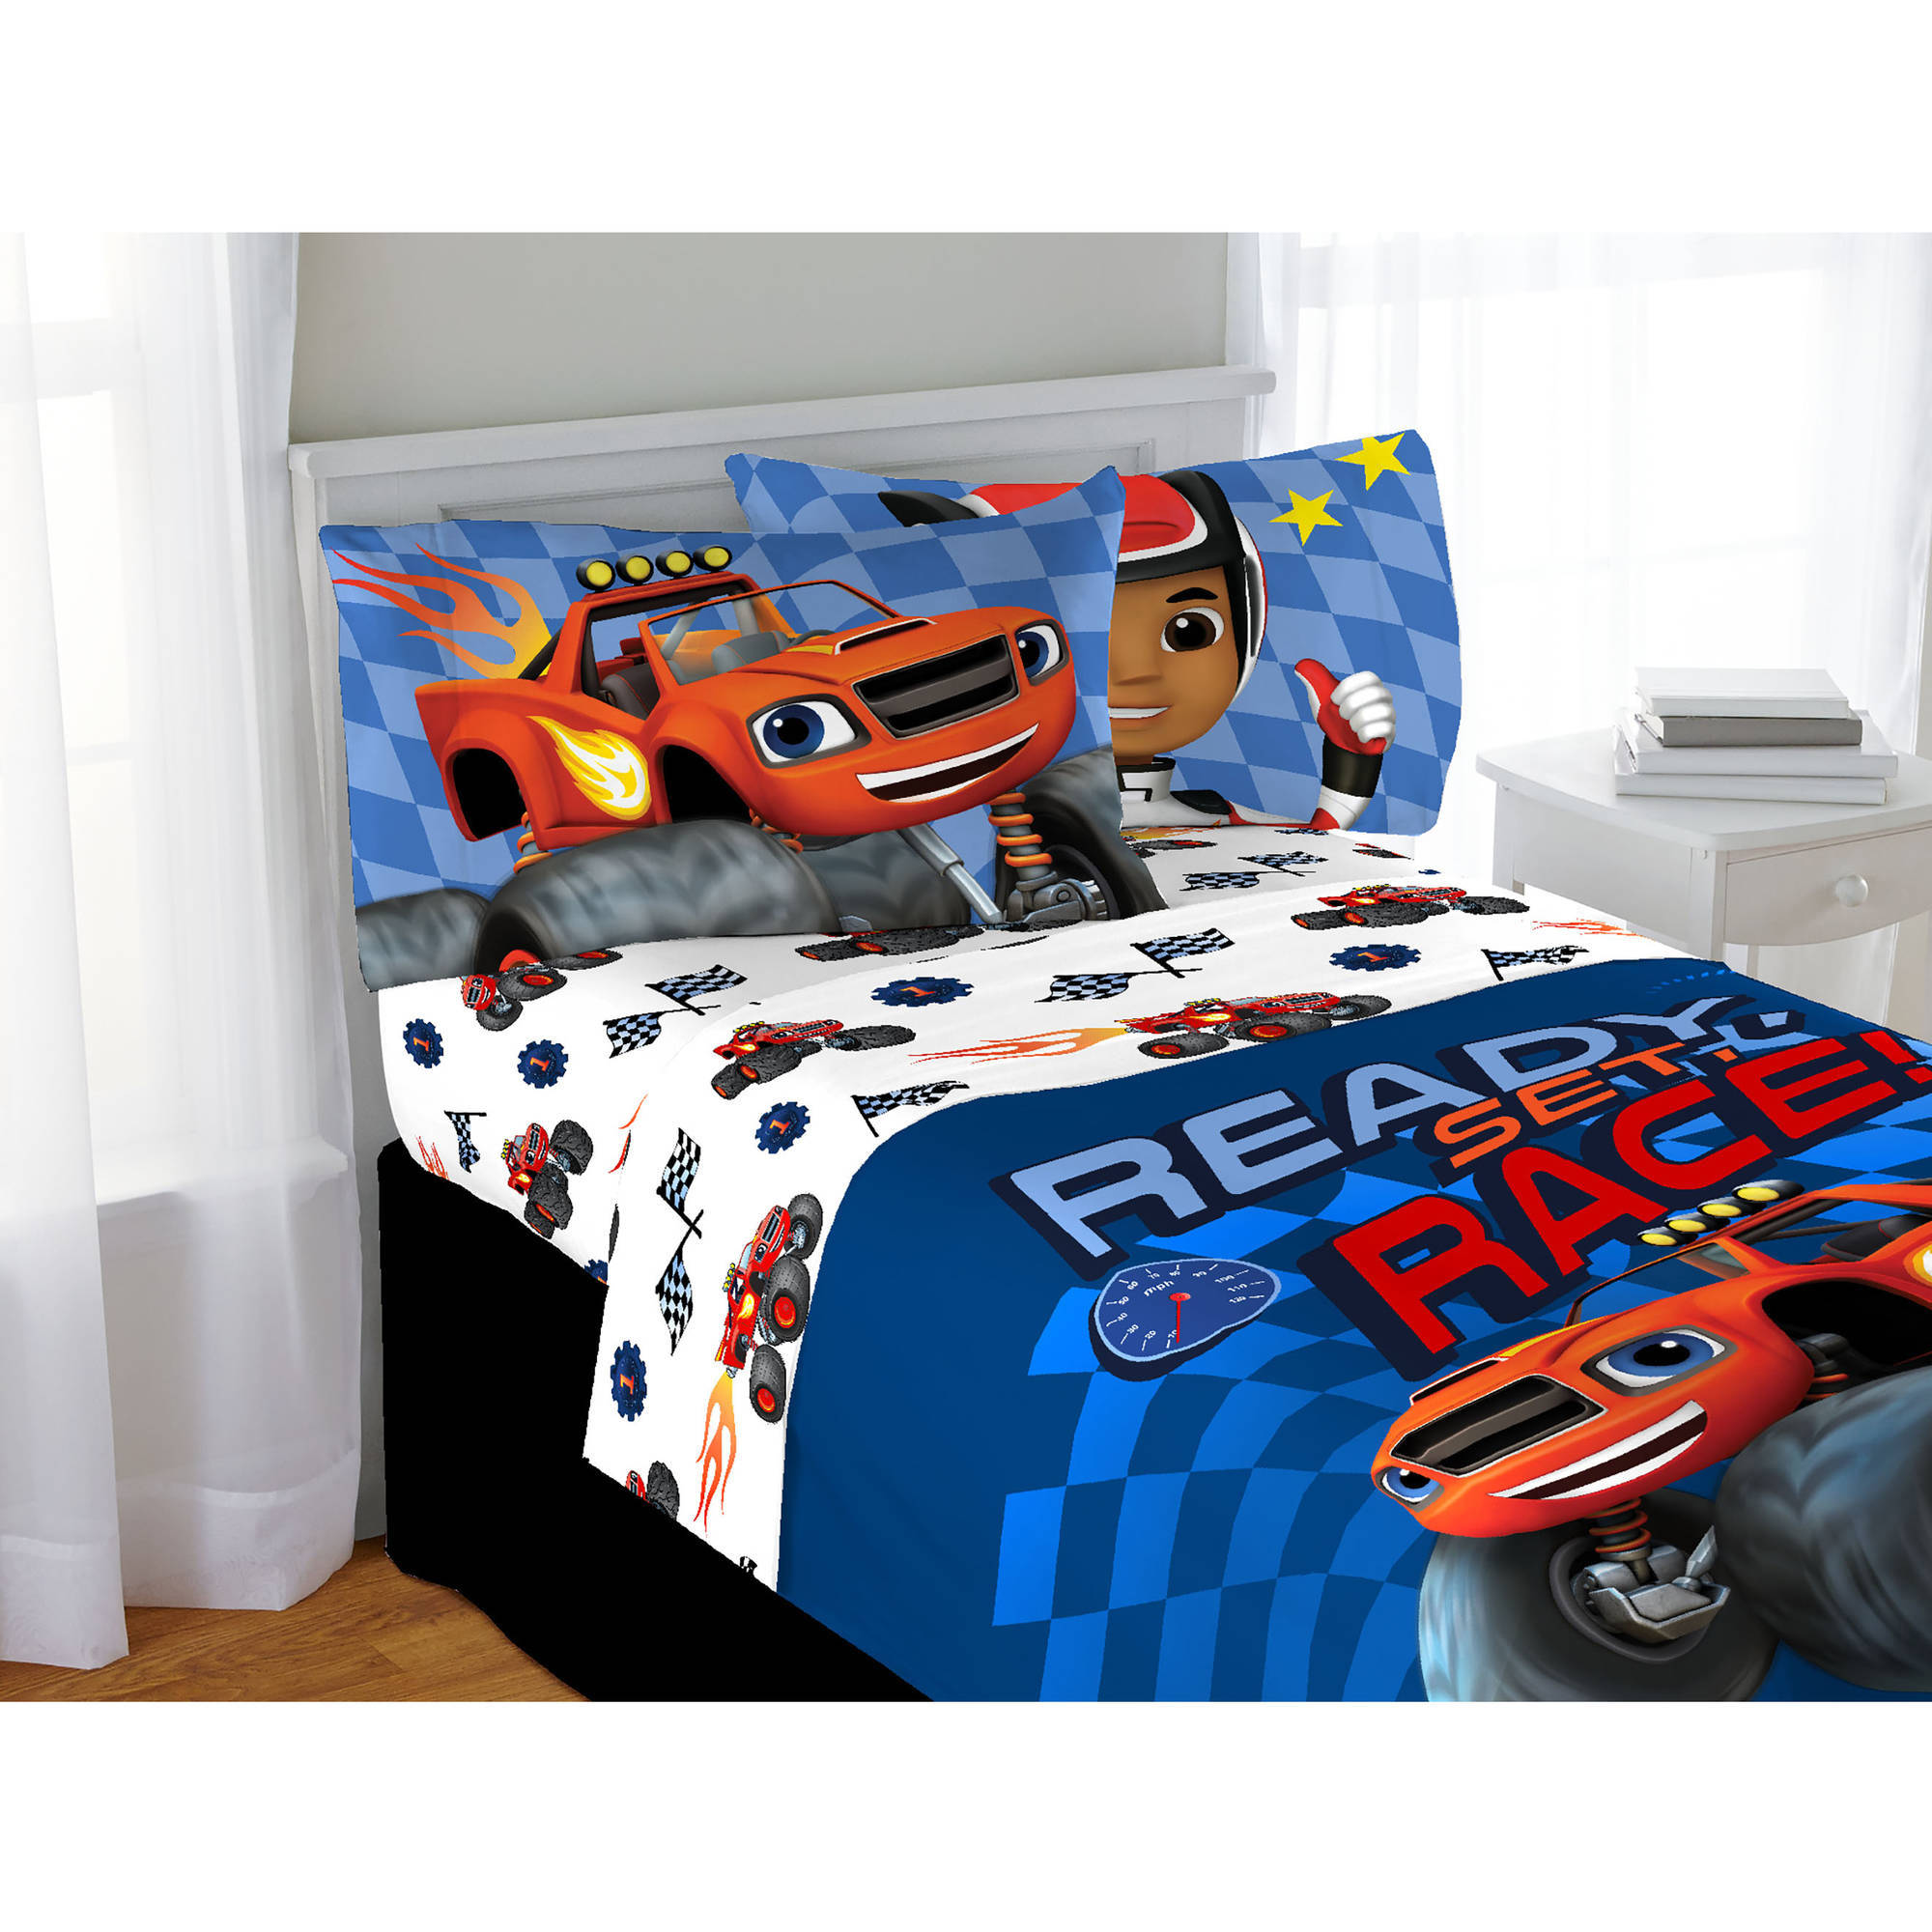 Nickelodeon Blaze and the Monster Machines High Octane Twin Sheet Set